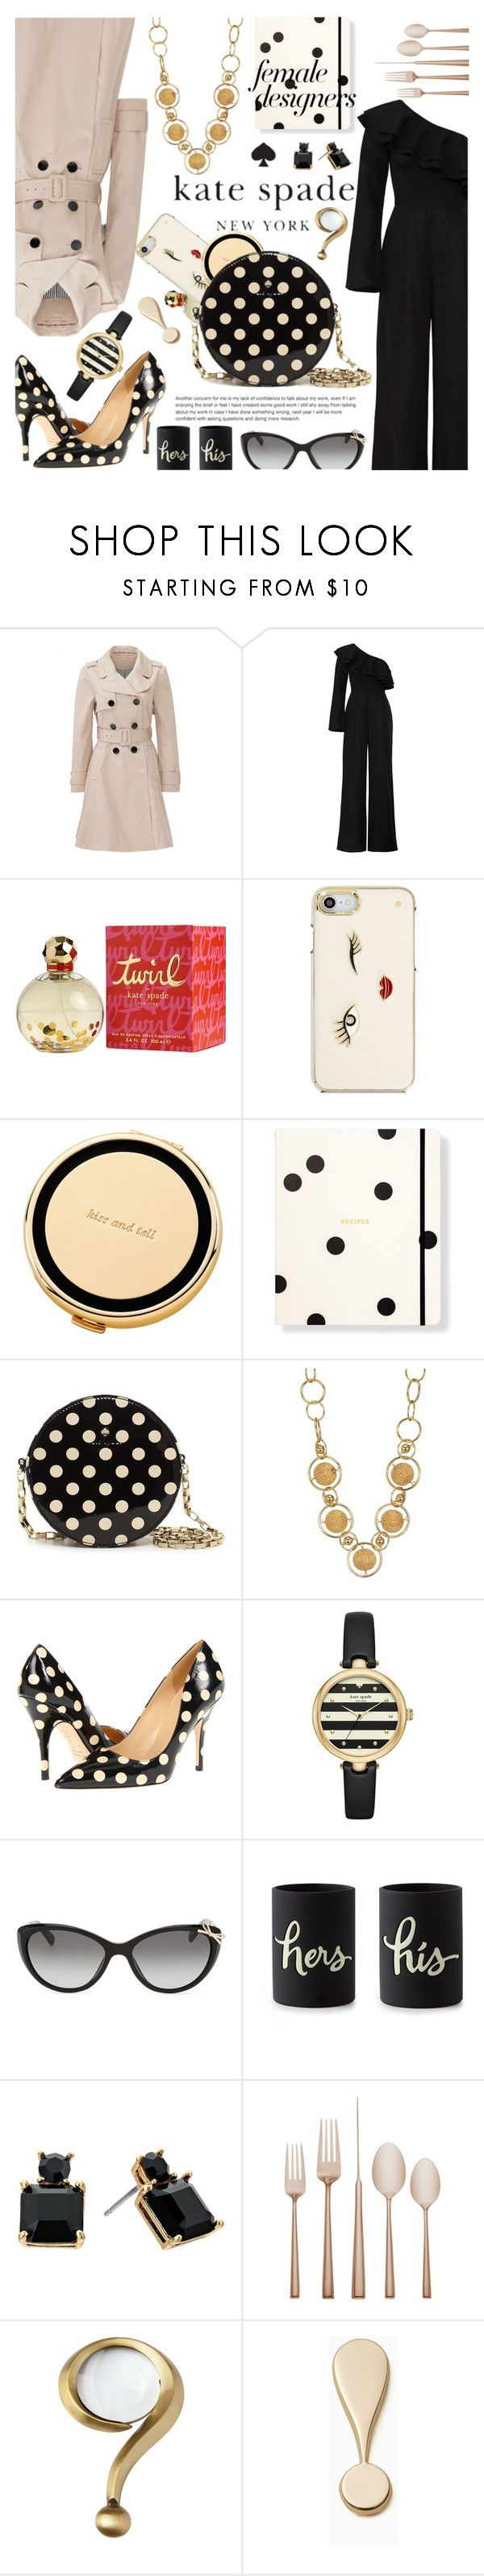 """""""Female Fashion Designers Rule! Kate Spade"""" by free-bird0818 ❤ liked on Polyvore featuring Kate Spade"""